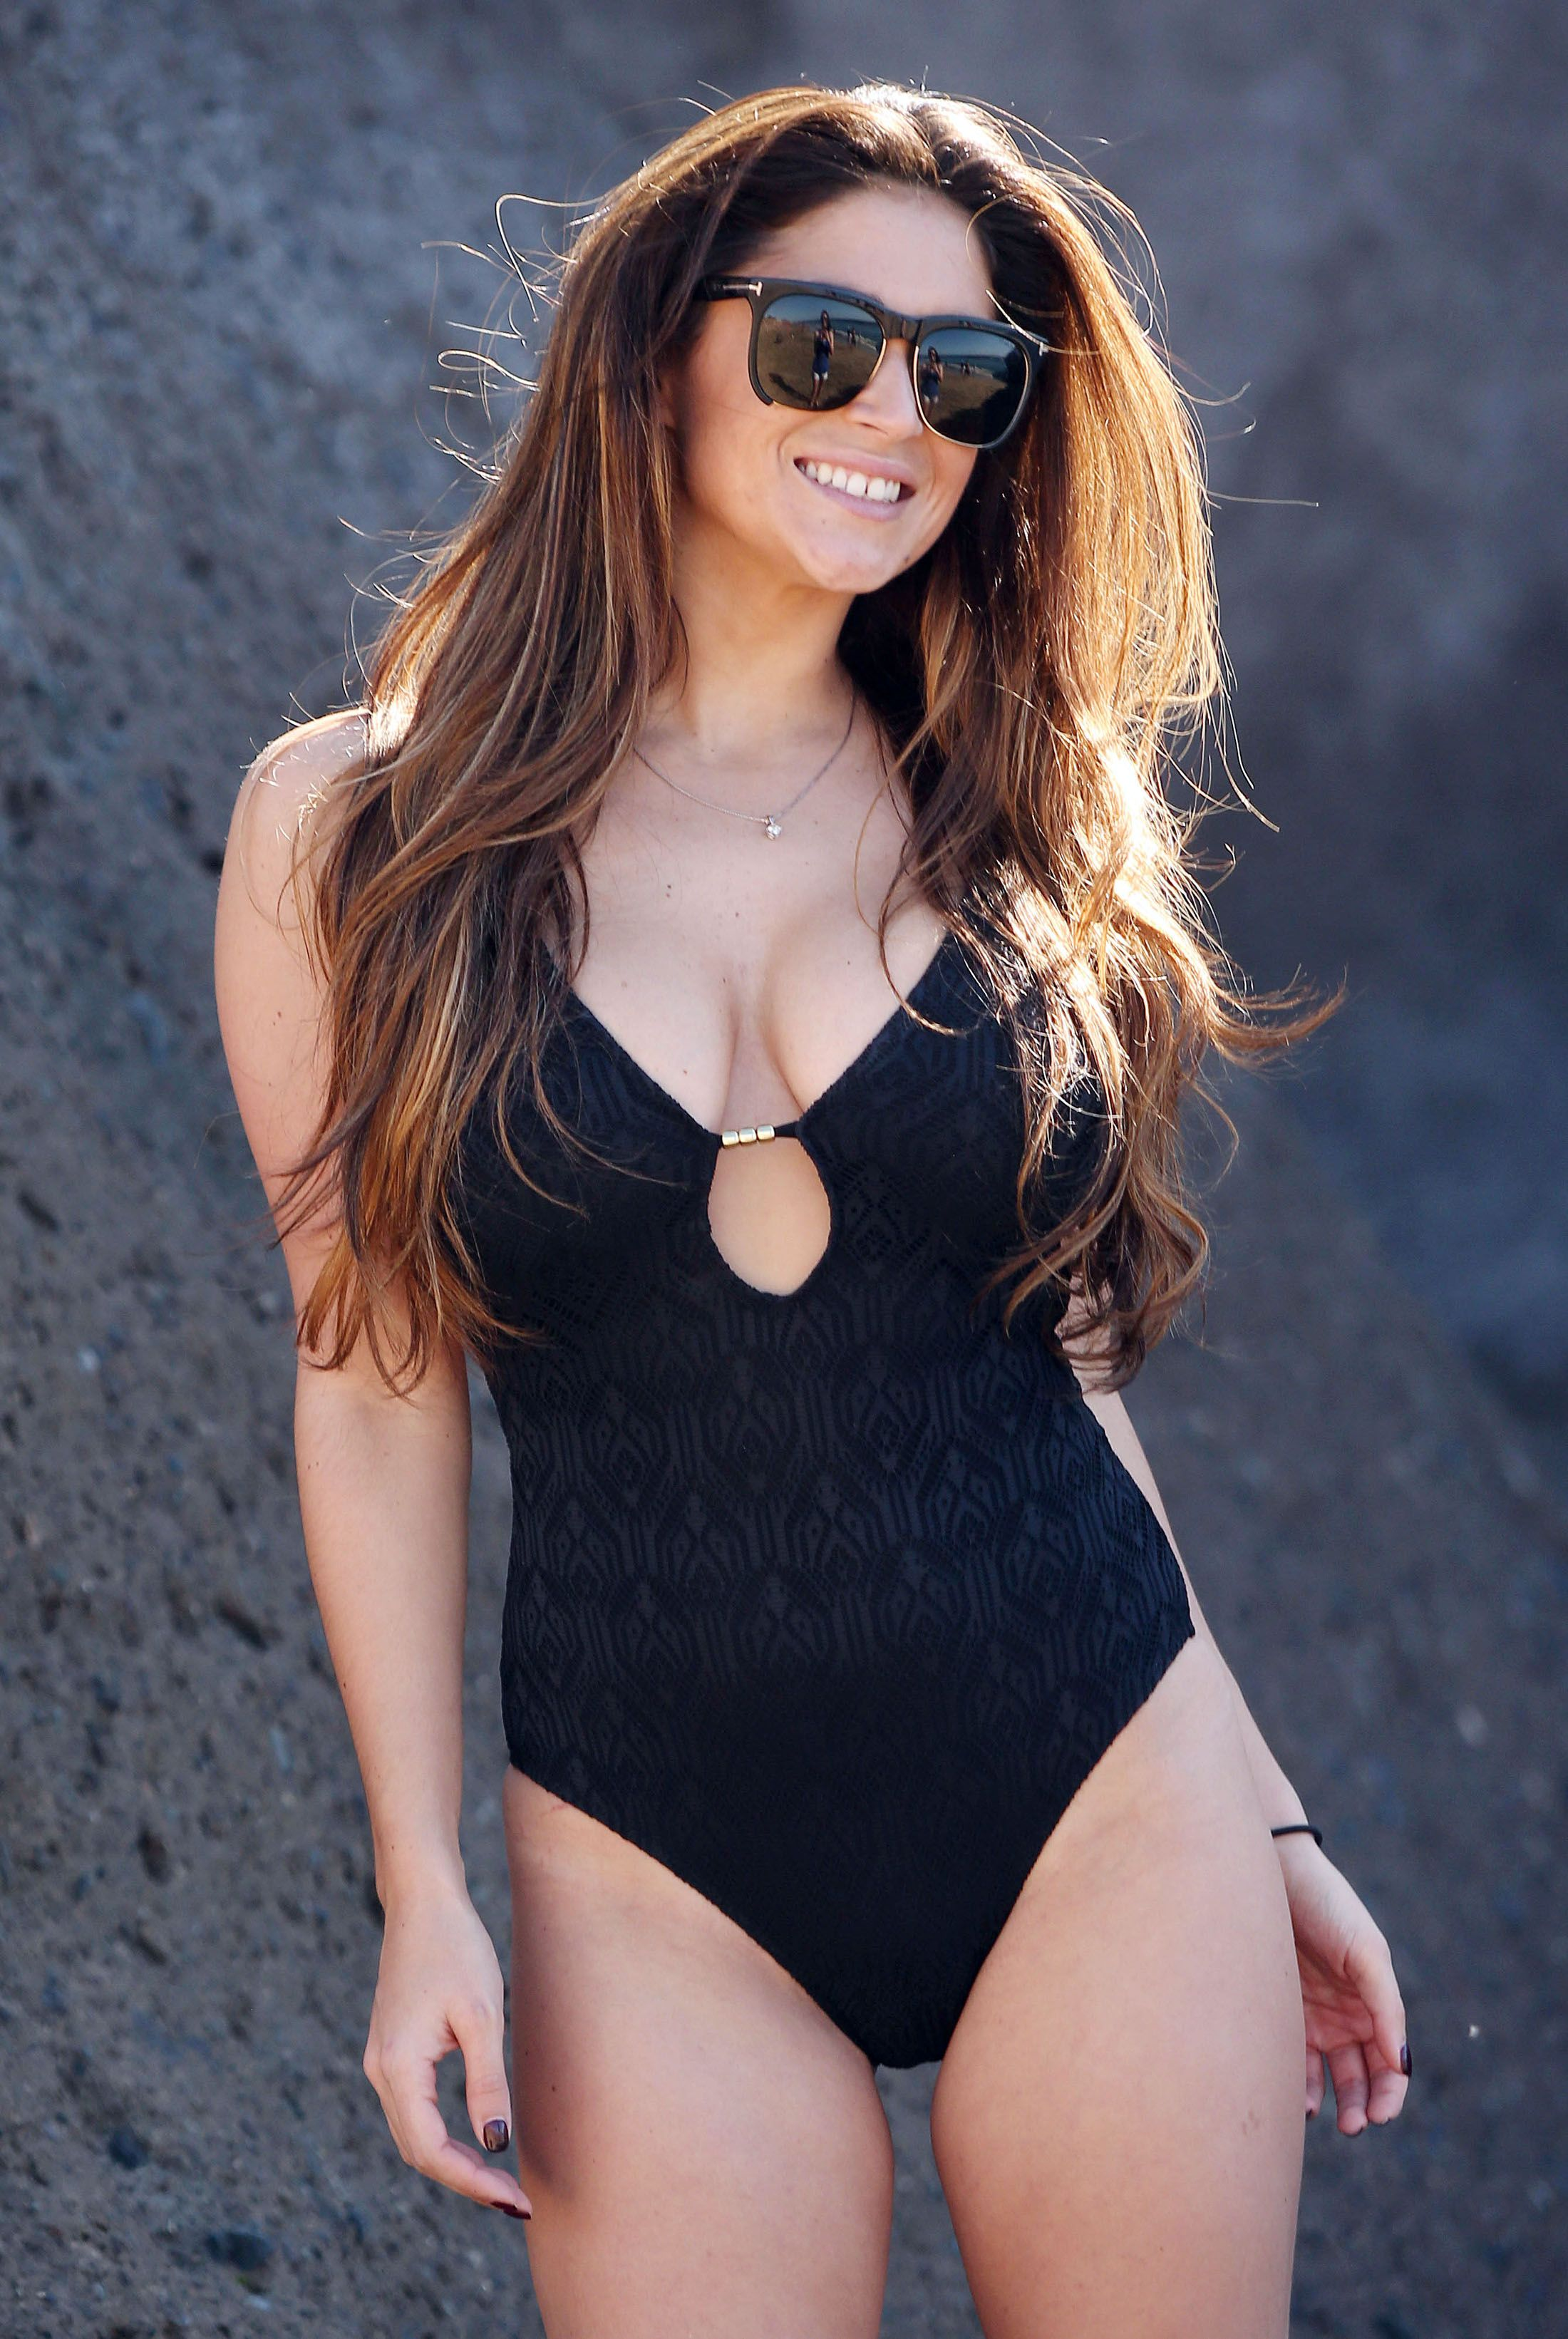 Casey Batchelor Swimsuit Photos